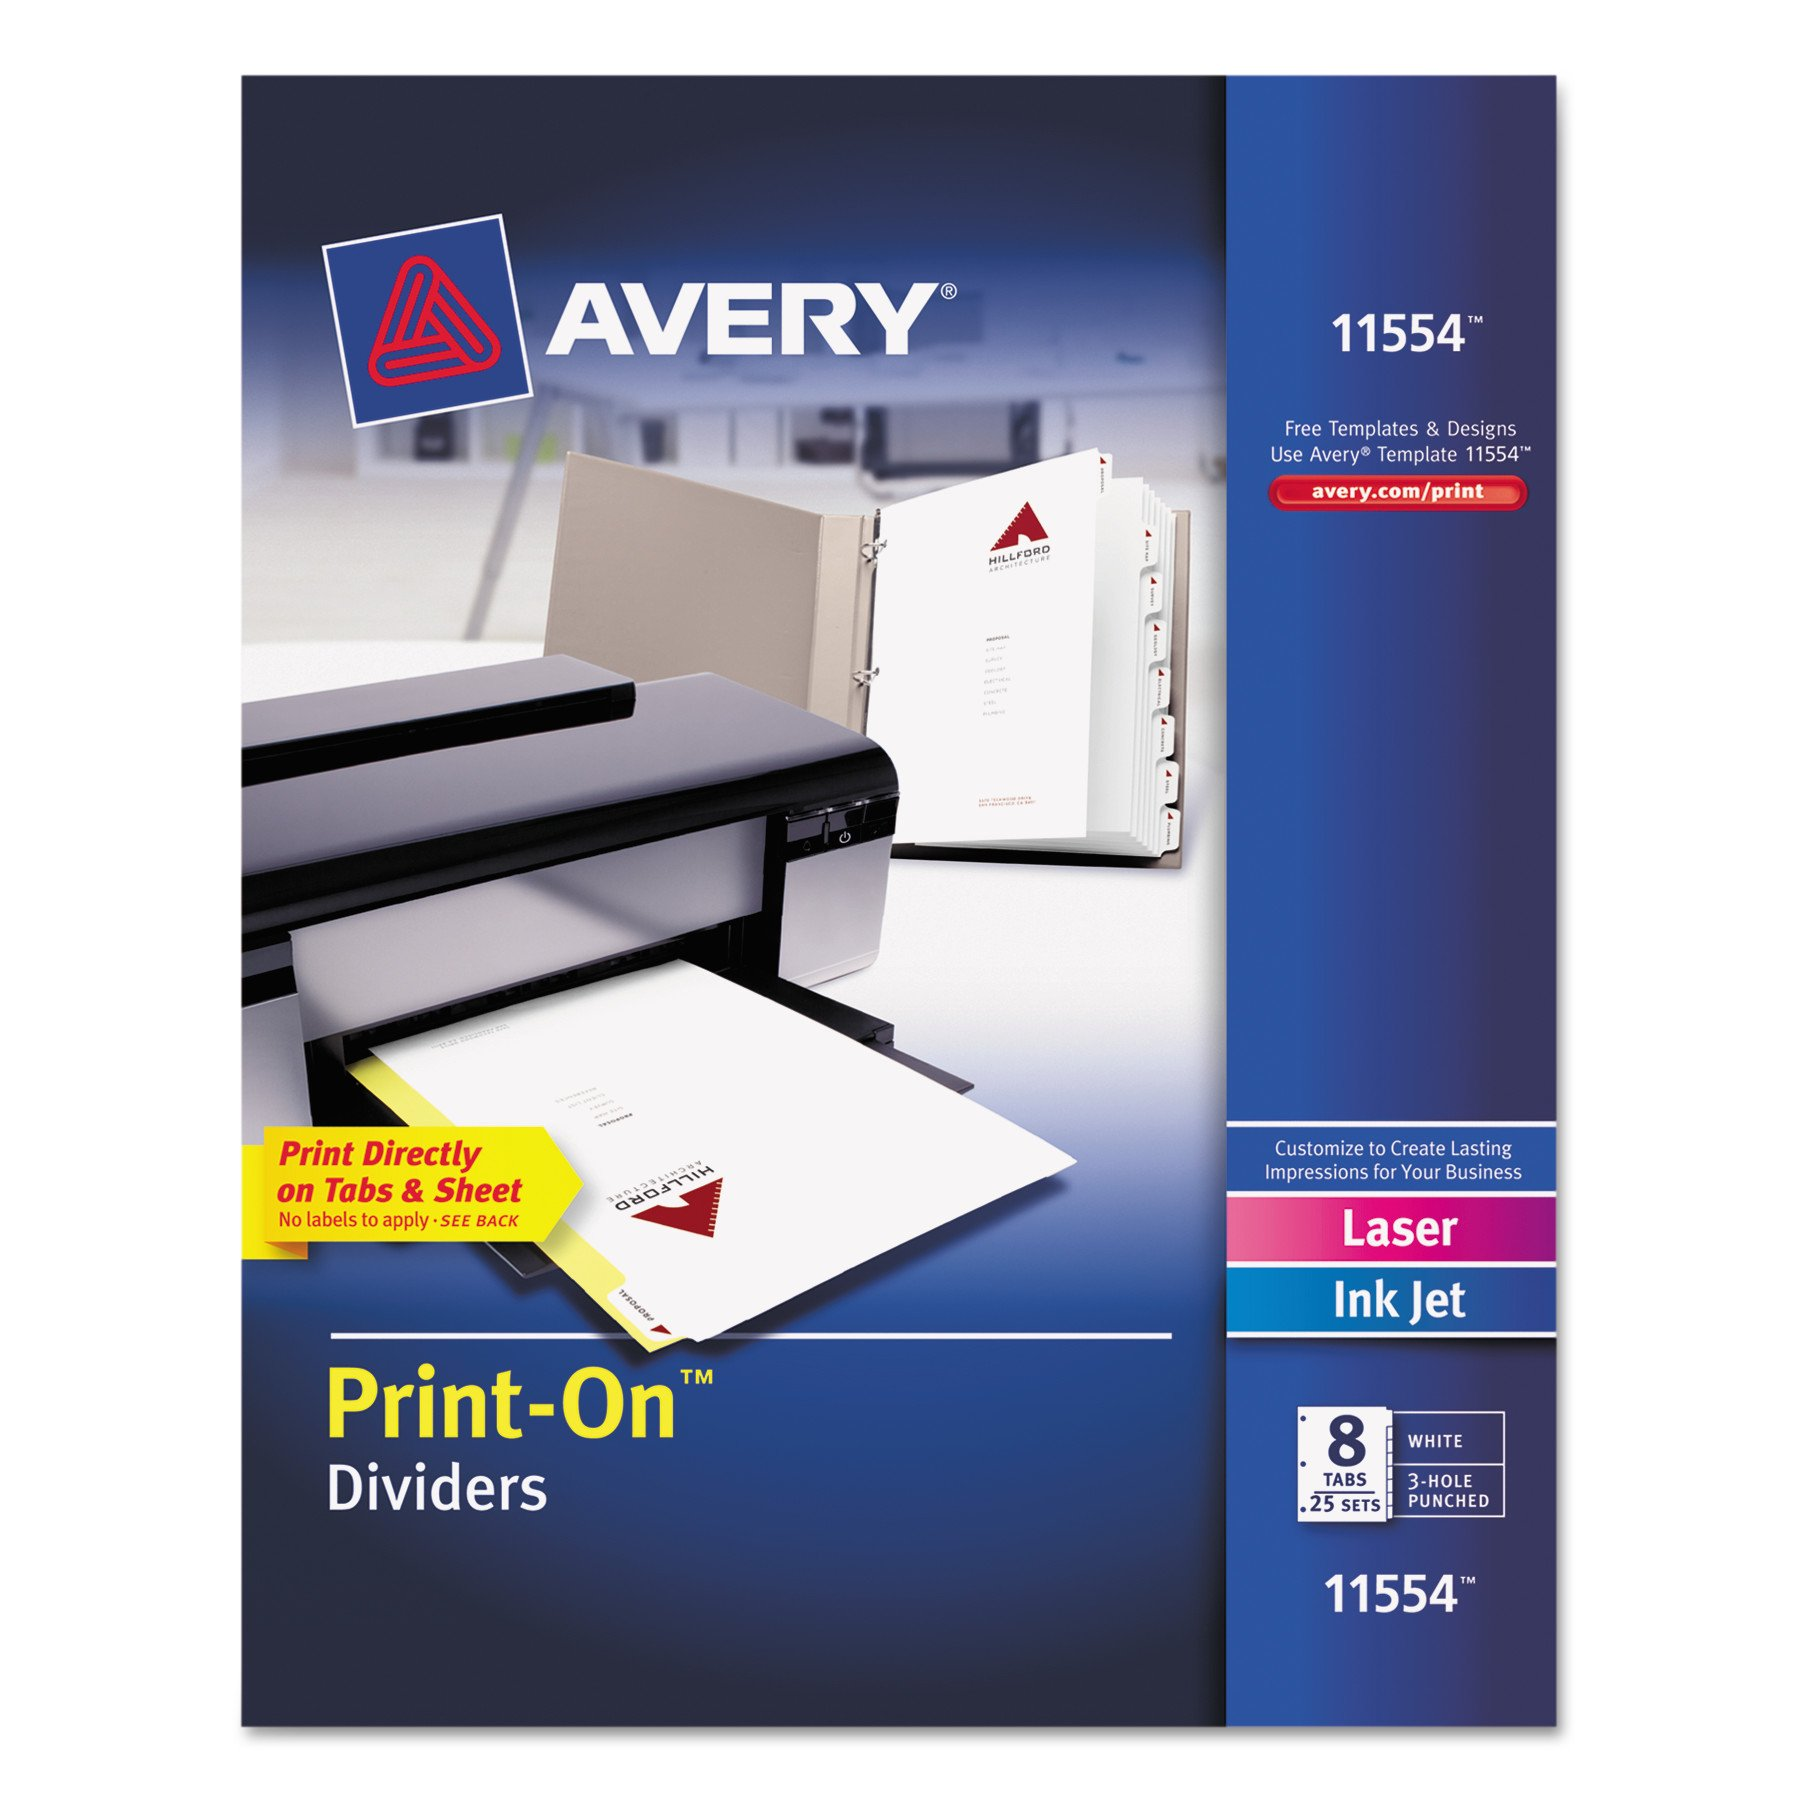 Avery 8-Tab Print-On Binder Dividers, White Tabs, 25 Sets (11554) by Avery